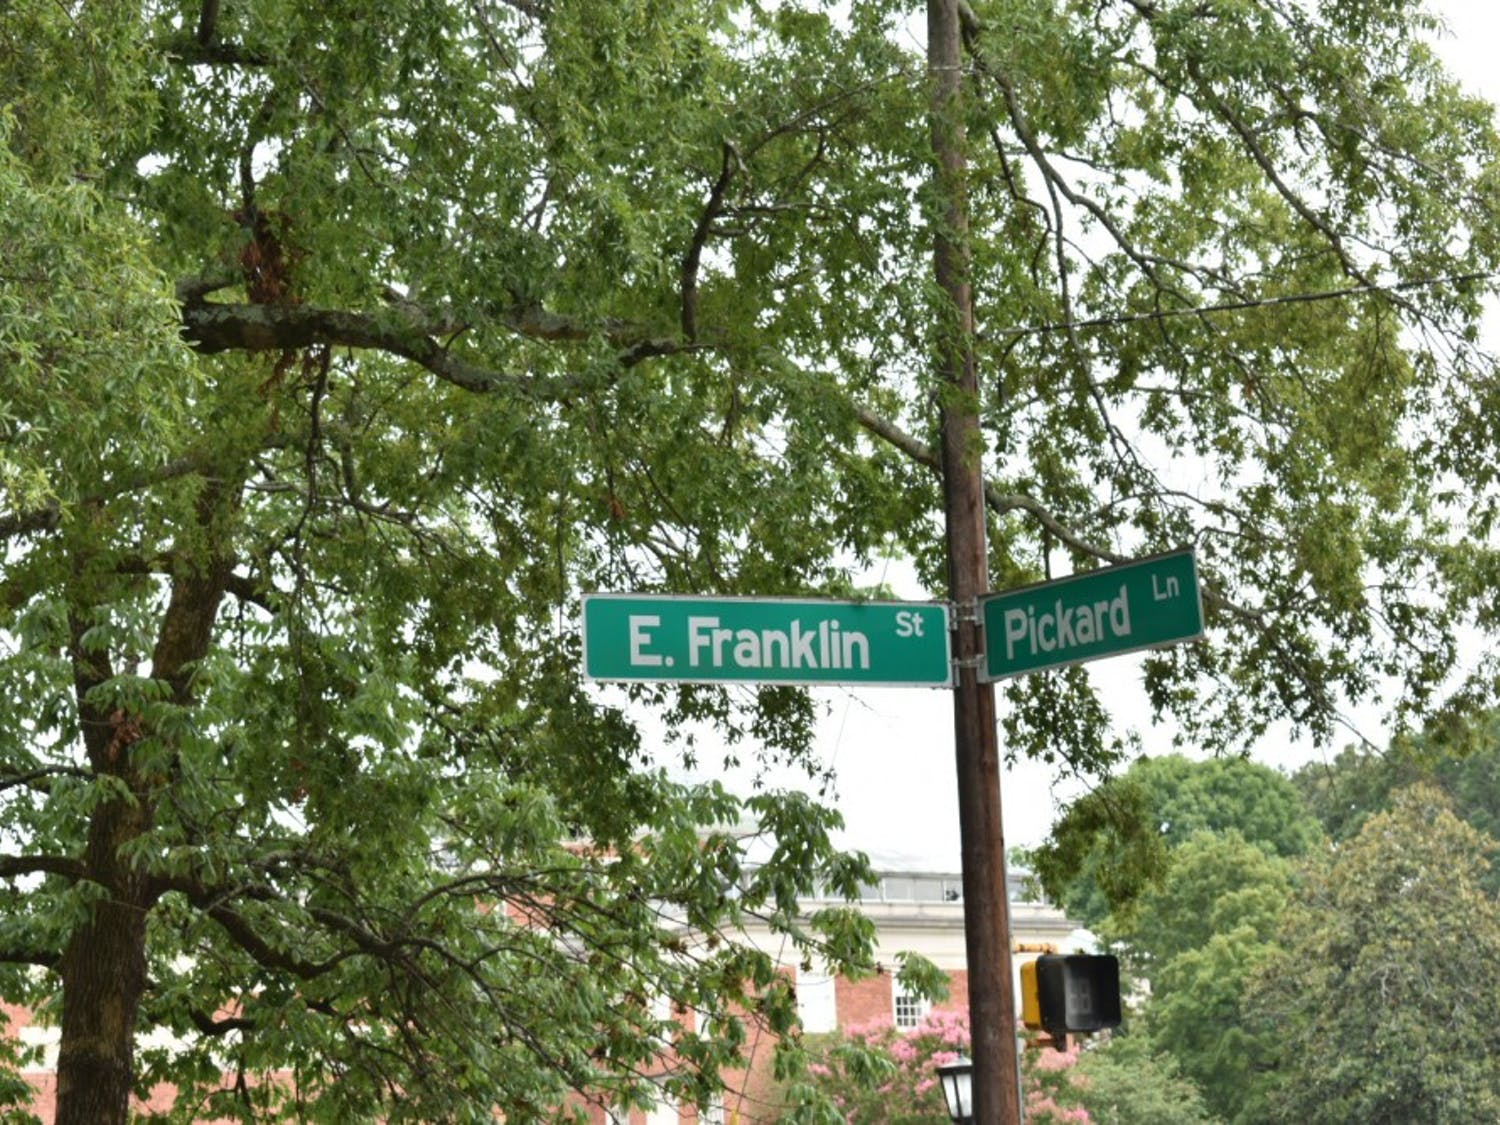 Franklin Street will be closed between Pickard Lane and S. Columbia Street between 9 p.m. July 24 and 6 a.m. July 25.